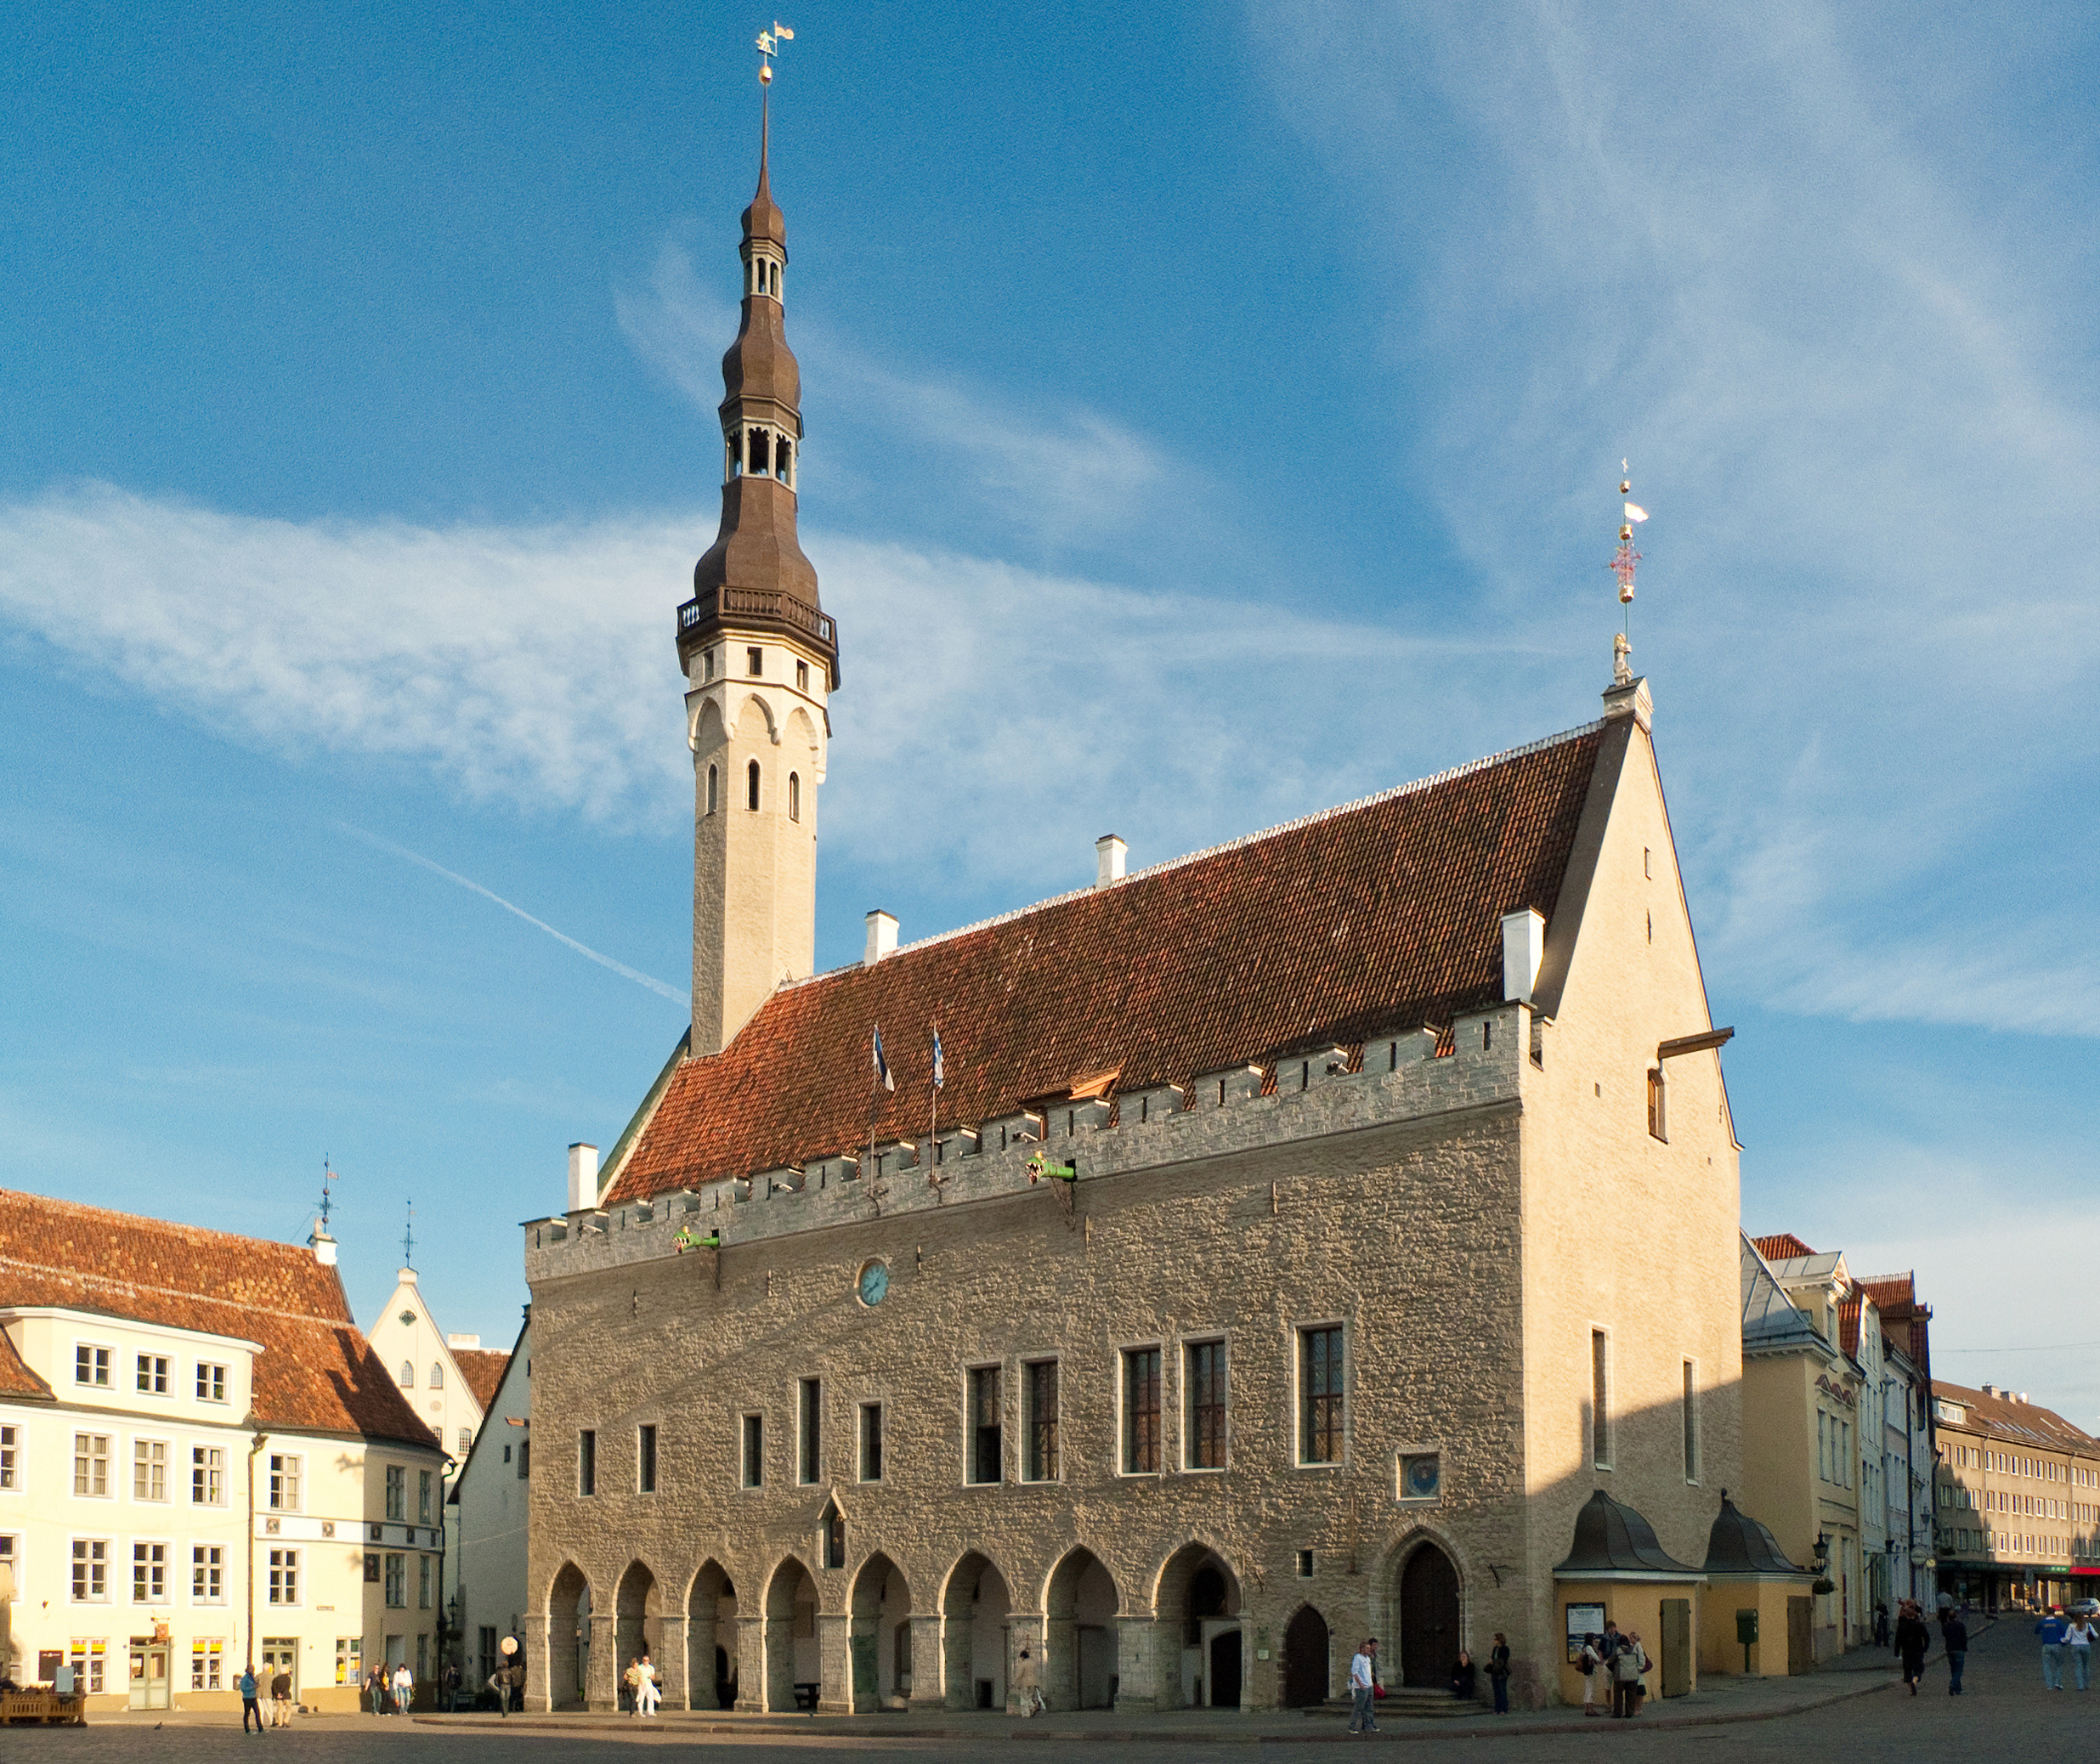 https://upload.wikimedia.org/wikipedia/commons/8/8b/Tallinn_Town_Hall_edit.jpg